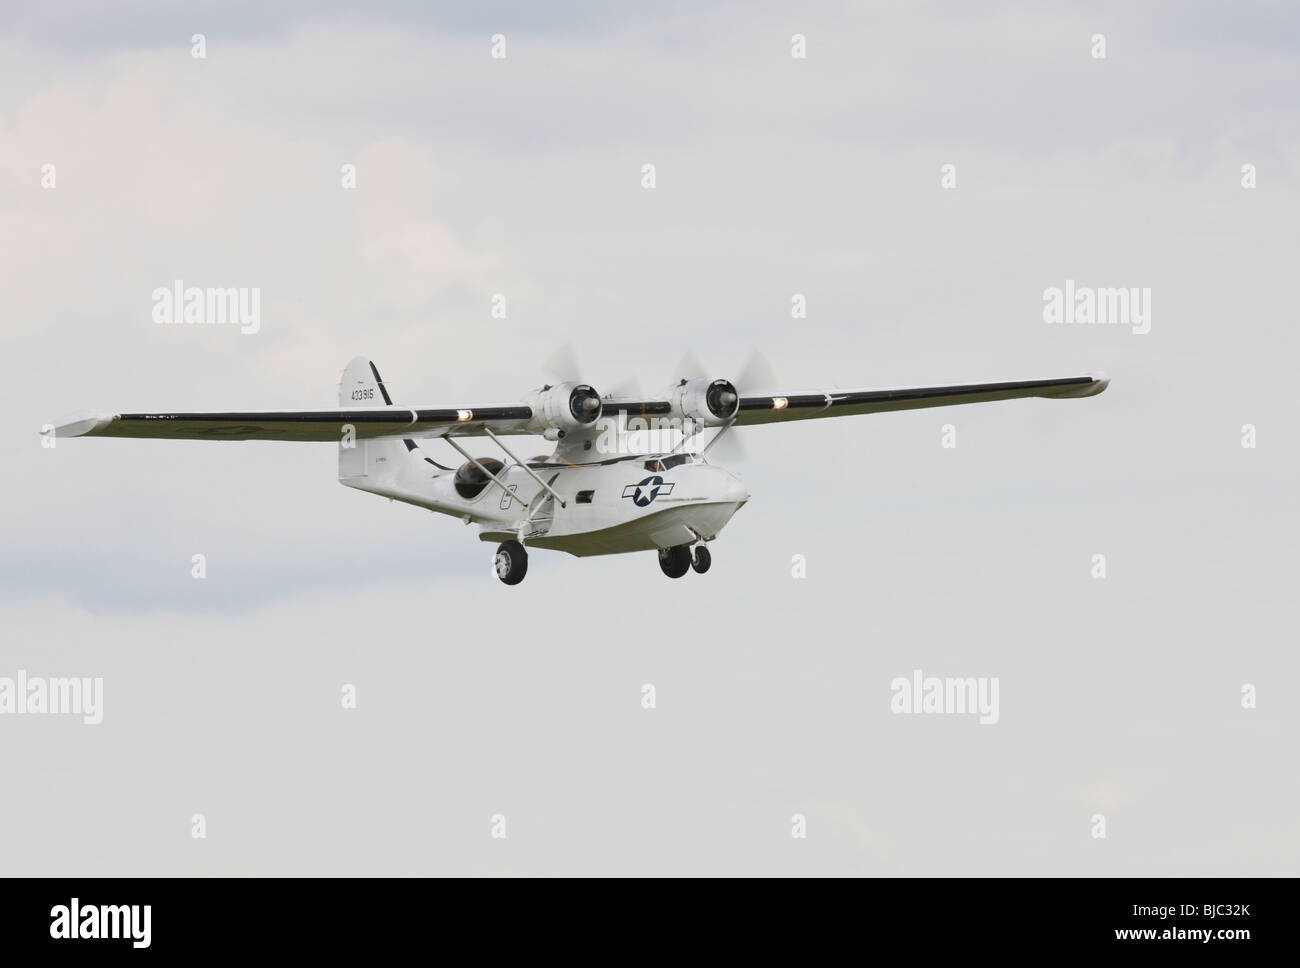 Consolidated PBY-5A Catalina on final approach at Duxford - Stock Image